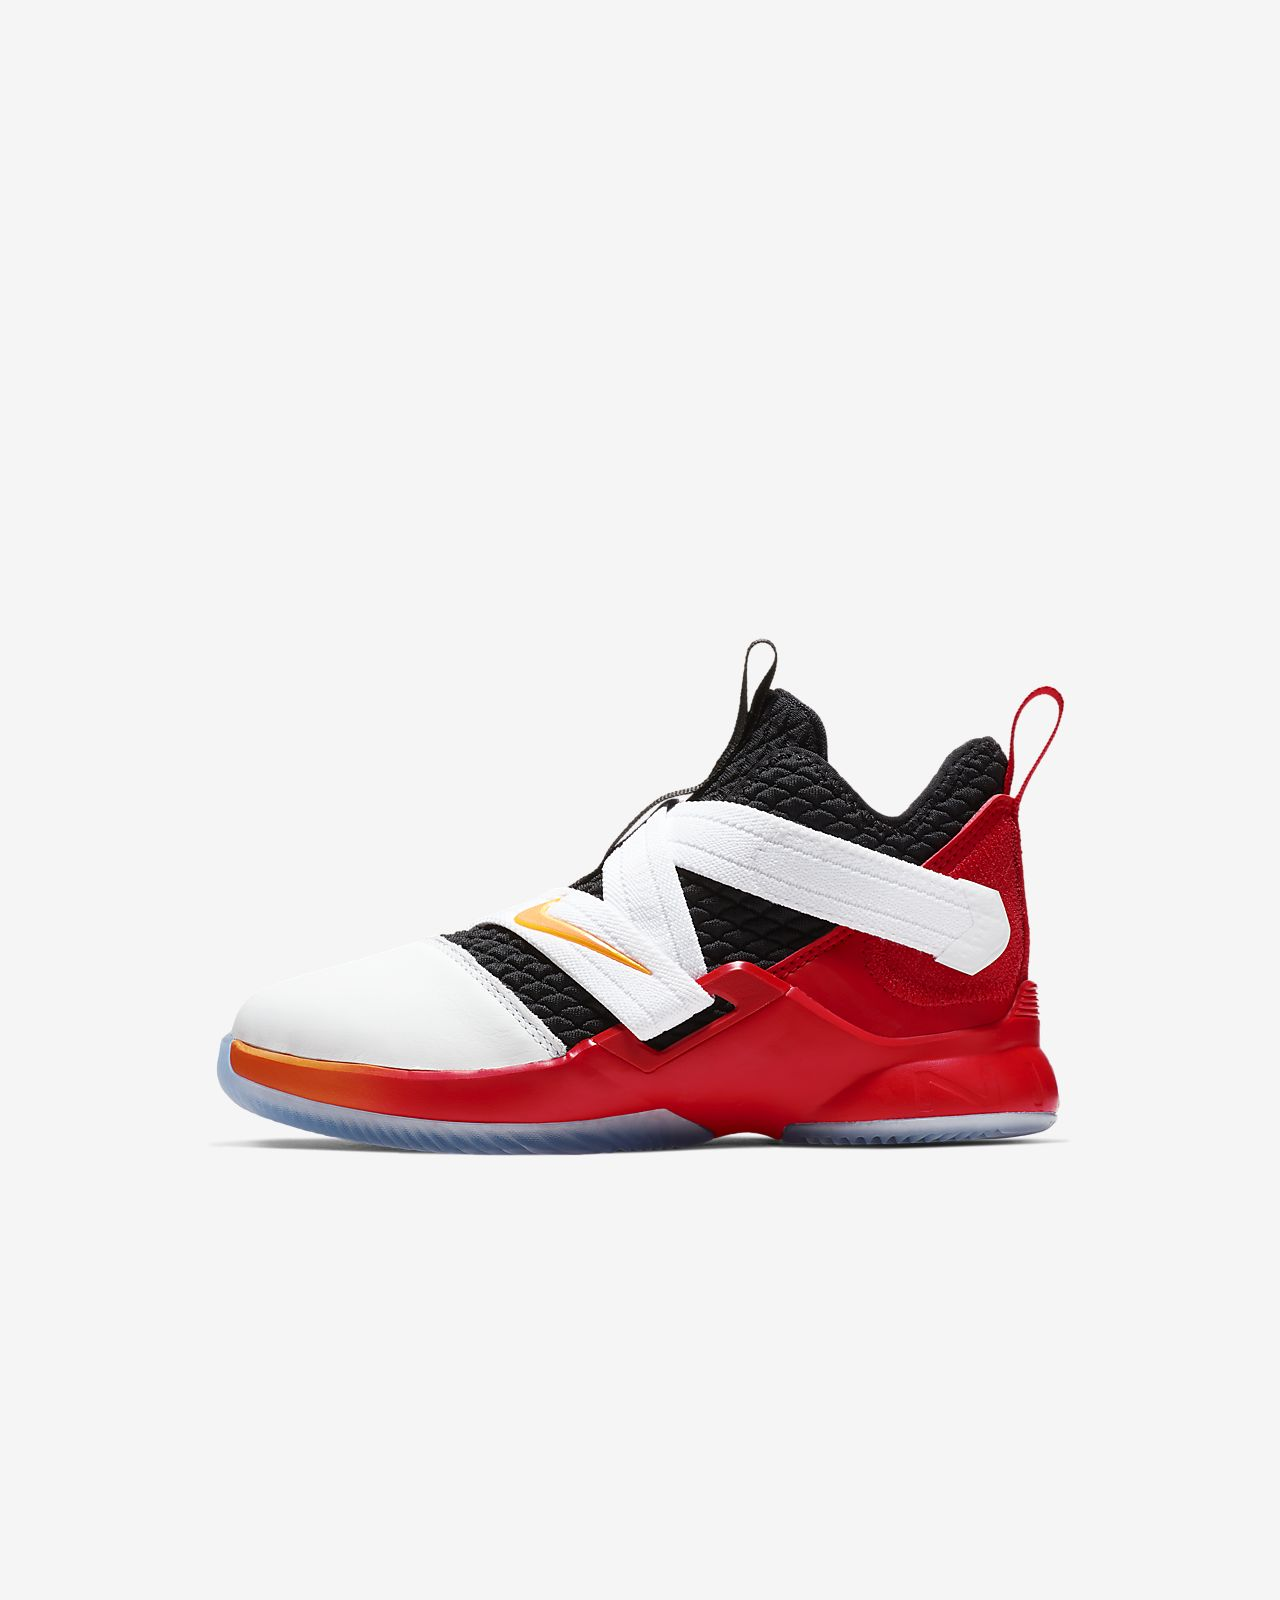 7619a474a10 LeBron Soldier 12 Little Kids' Shoe